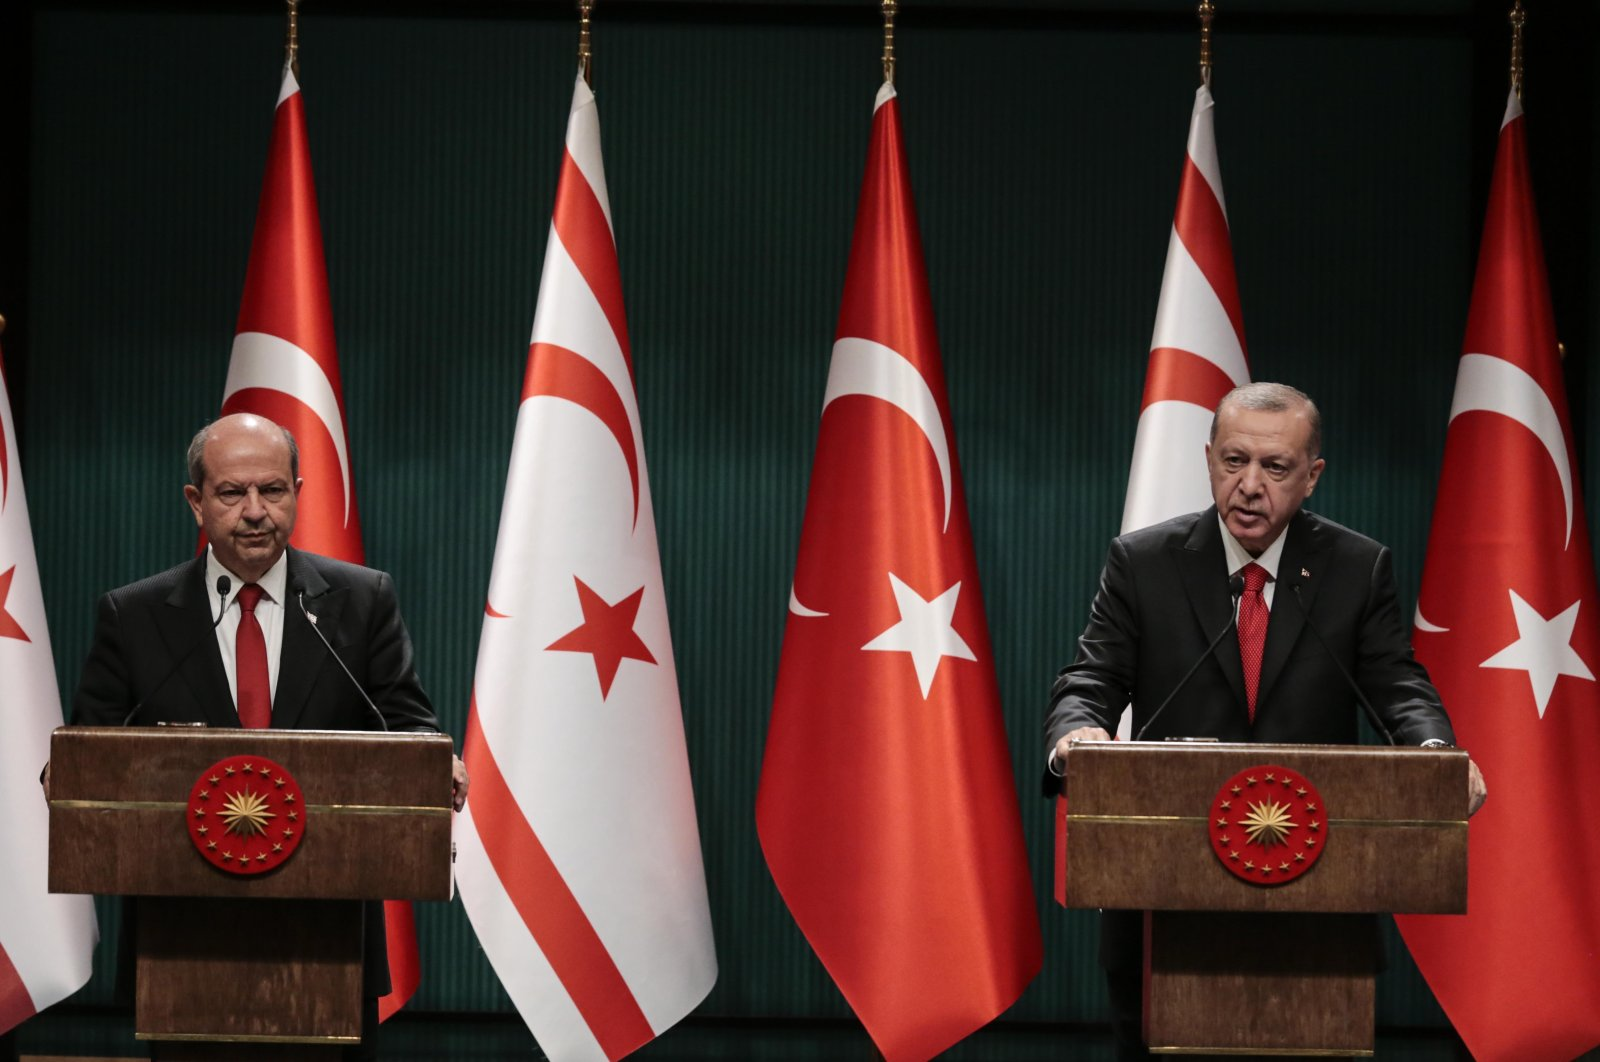 President Recep Tayyip Erdoğan (R) and TRNC President Ersin Tatar during a joint press conference in Istanbul, Nov. 27, 2020. (AA)